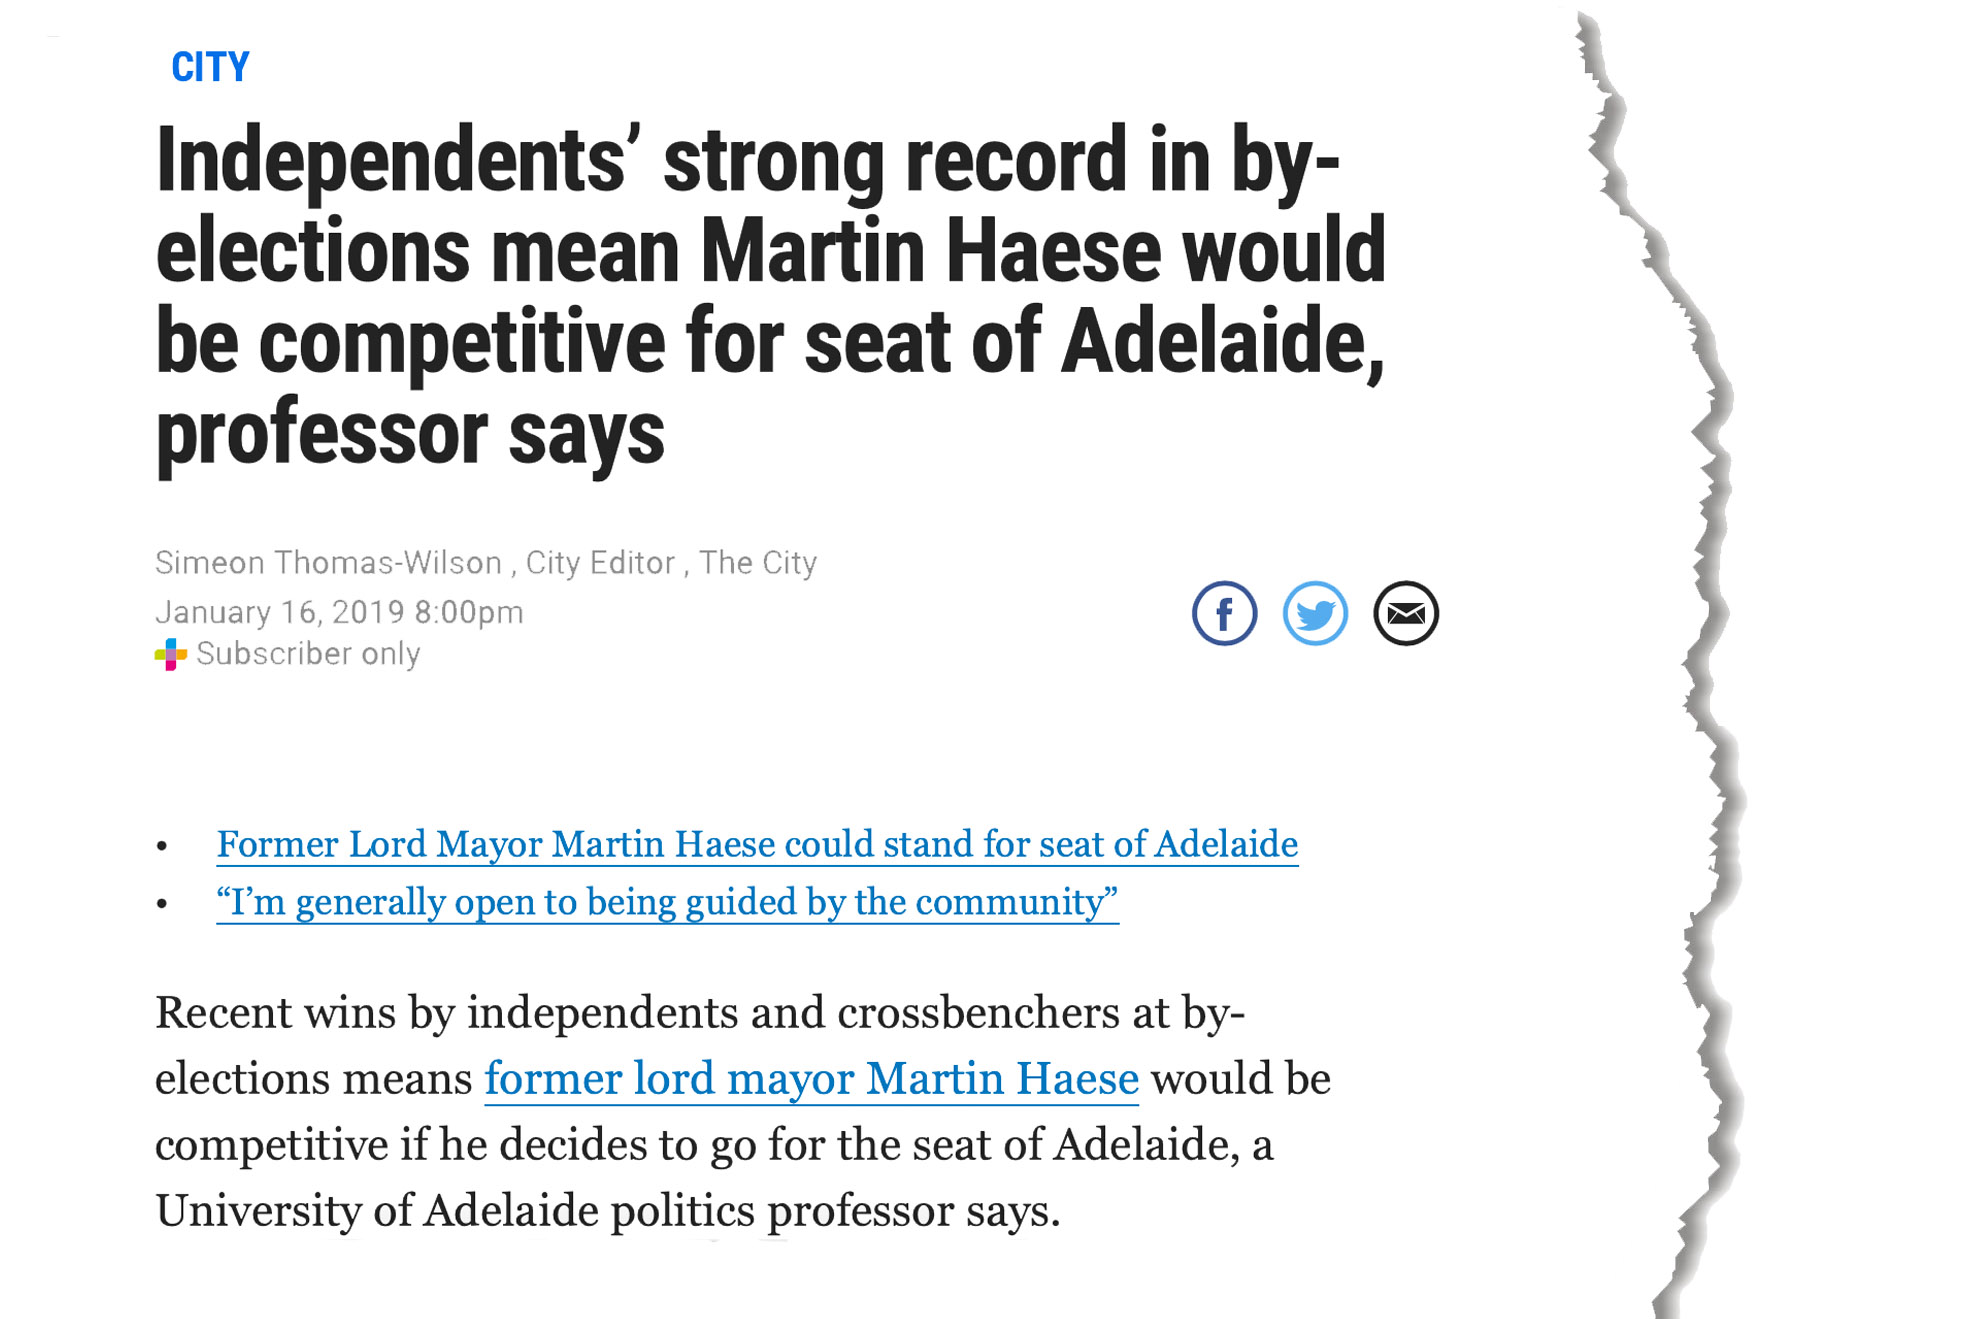 martin-haese-federal-election-speculation-the-advertiser16-january-2019